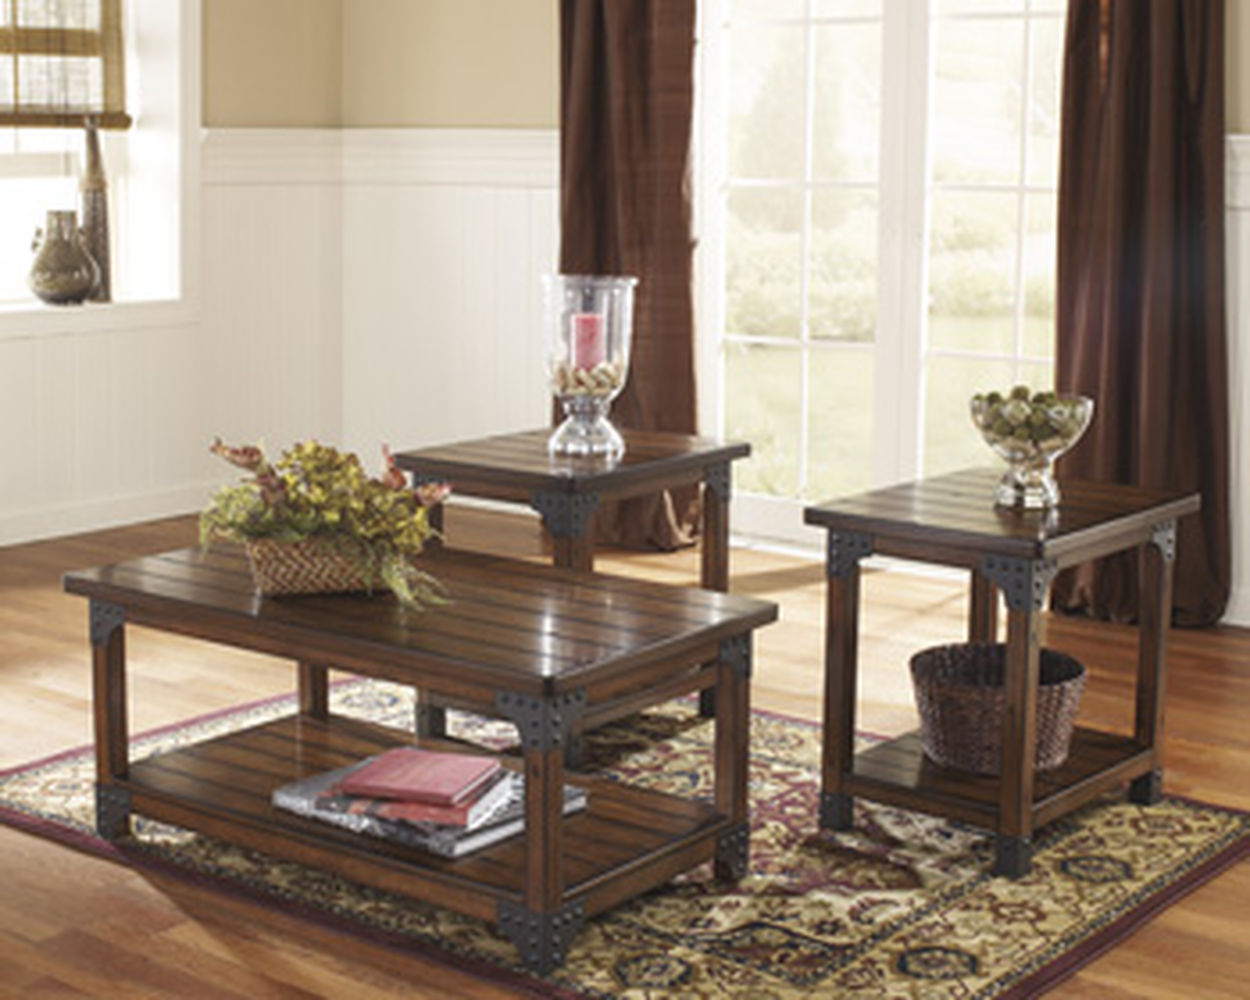 three piece nailhead trim rustic farm house accent table set big living room sets brown coffee end patio dining clearance miniature lamp with basket drawers home goods bedside